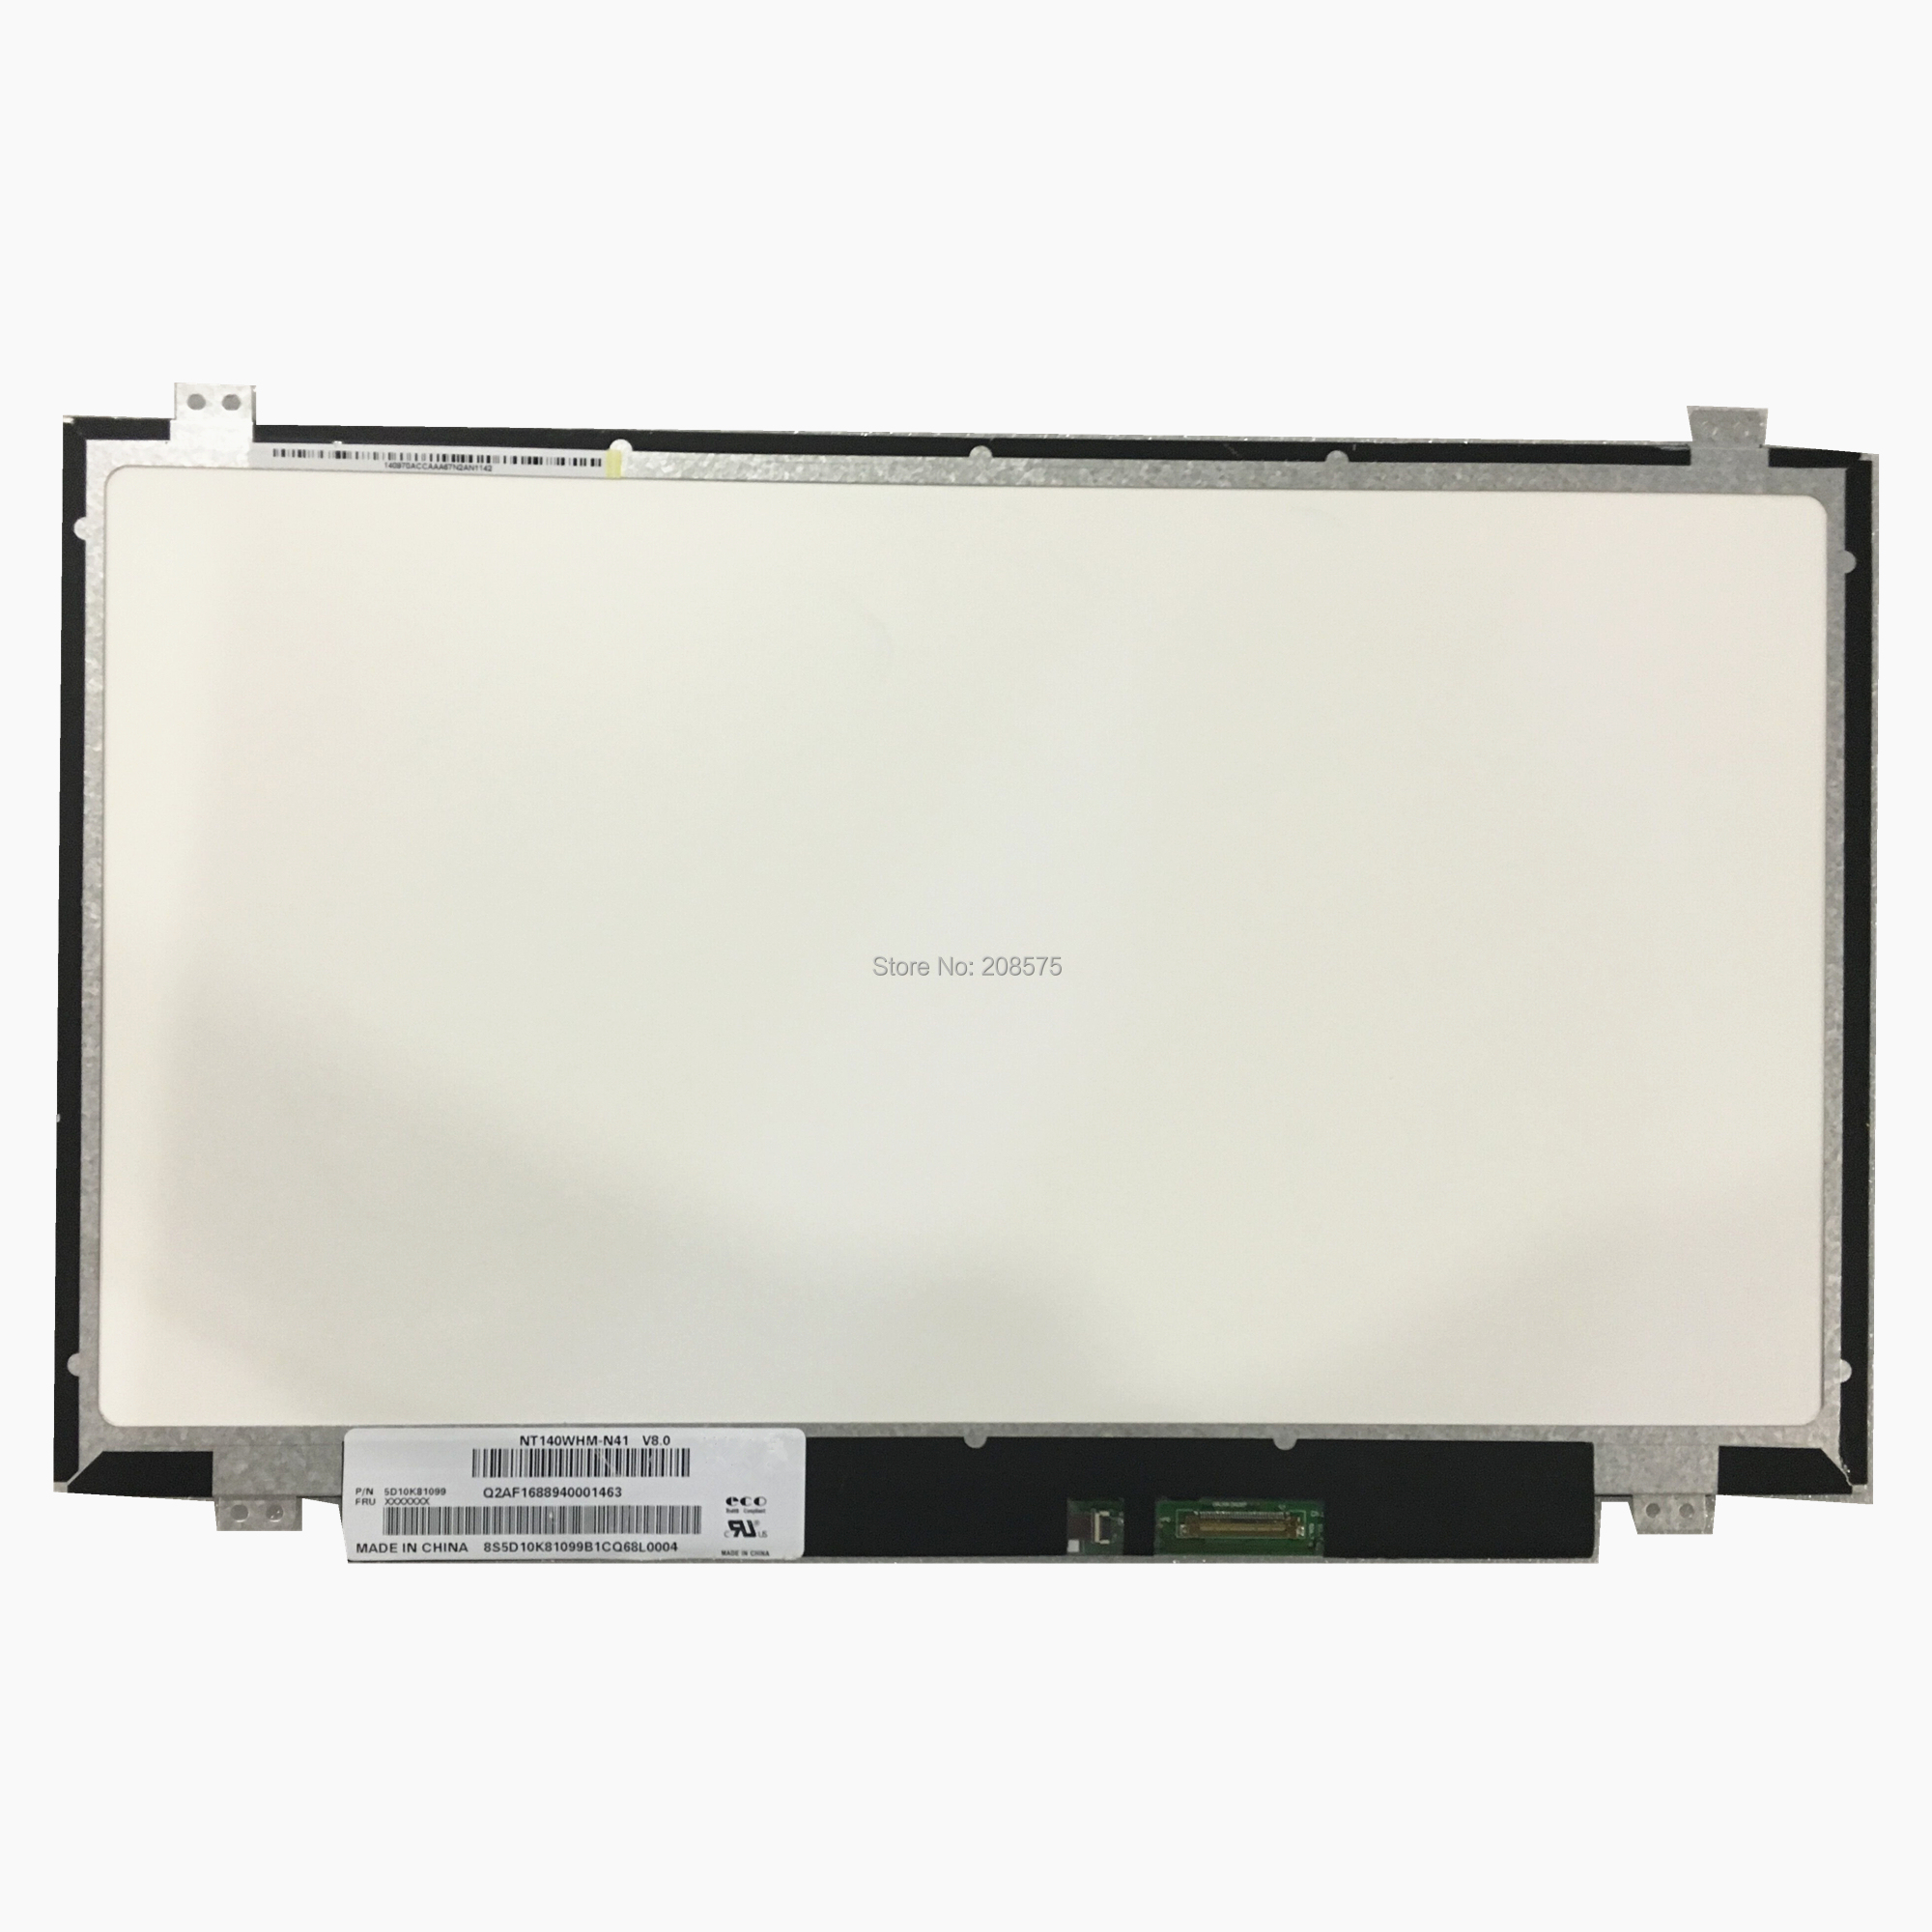 "A1 LP156WF6 SP LG 15.6/"" FHD eDP LED LCD Laptop Screen//Display LP156WF6-SPA1"